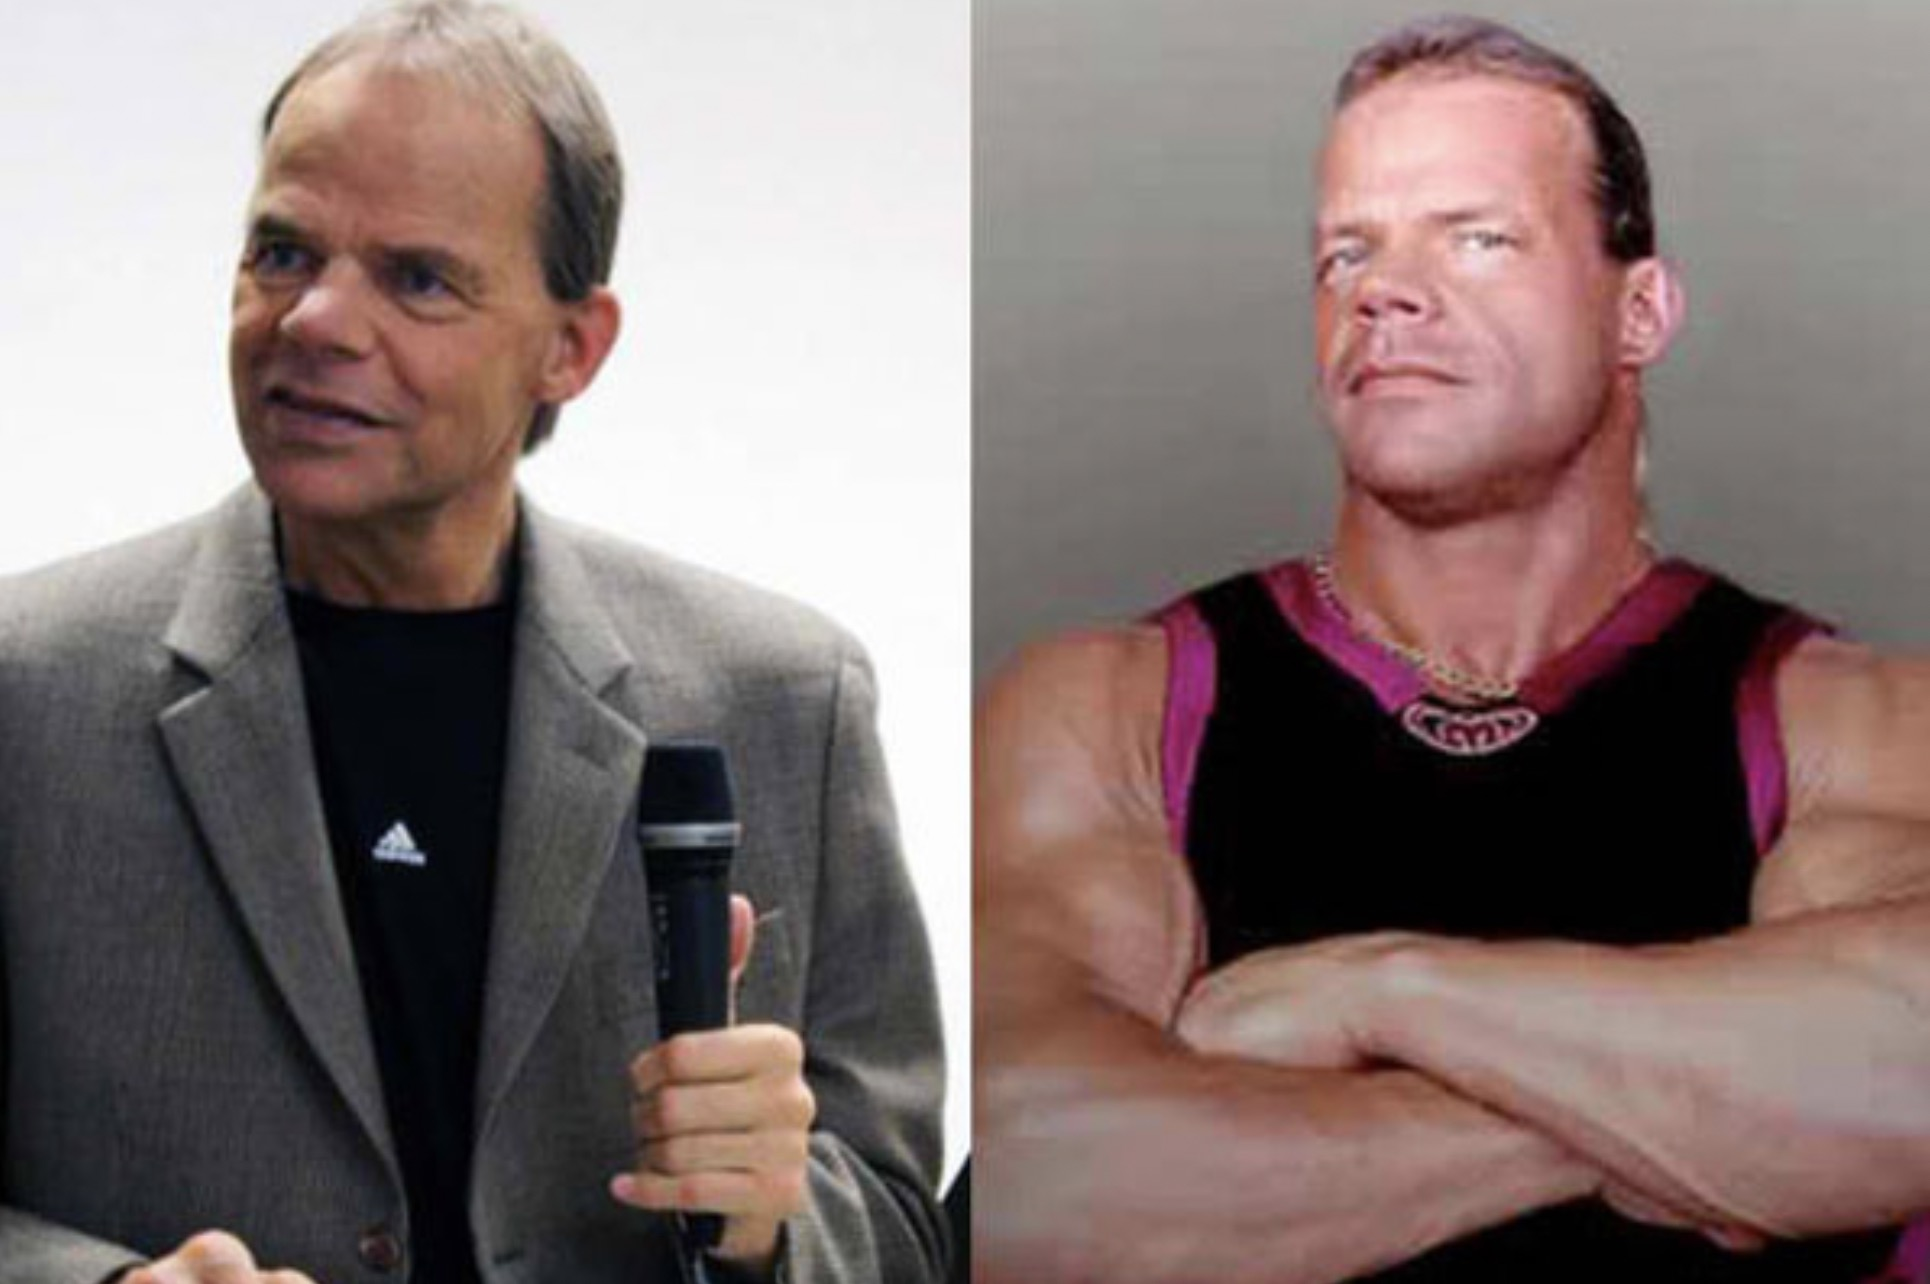 LEX LUGER 60 YEARS OLD